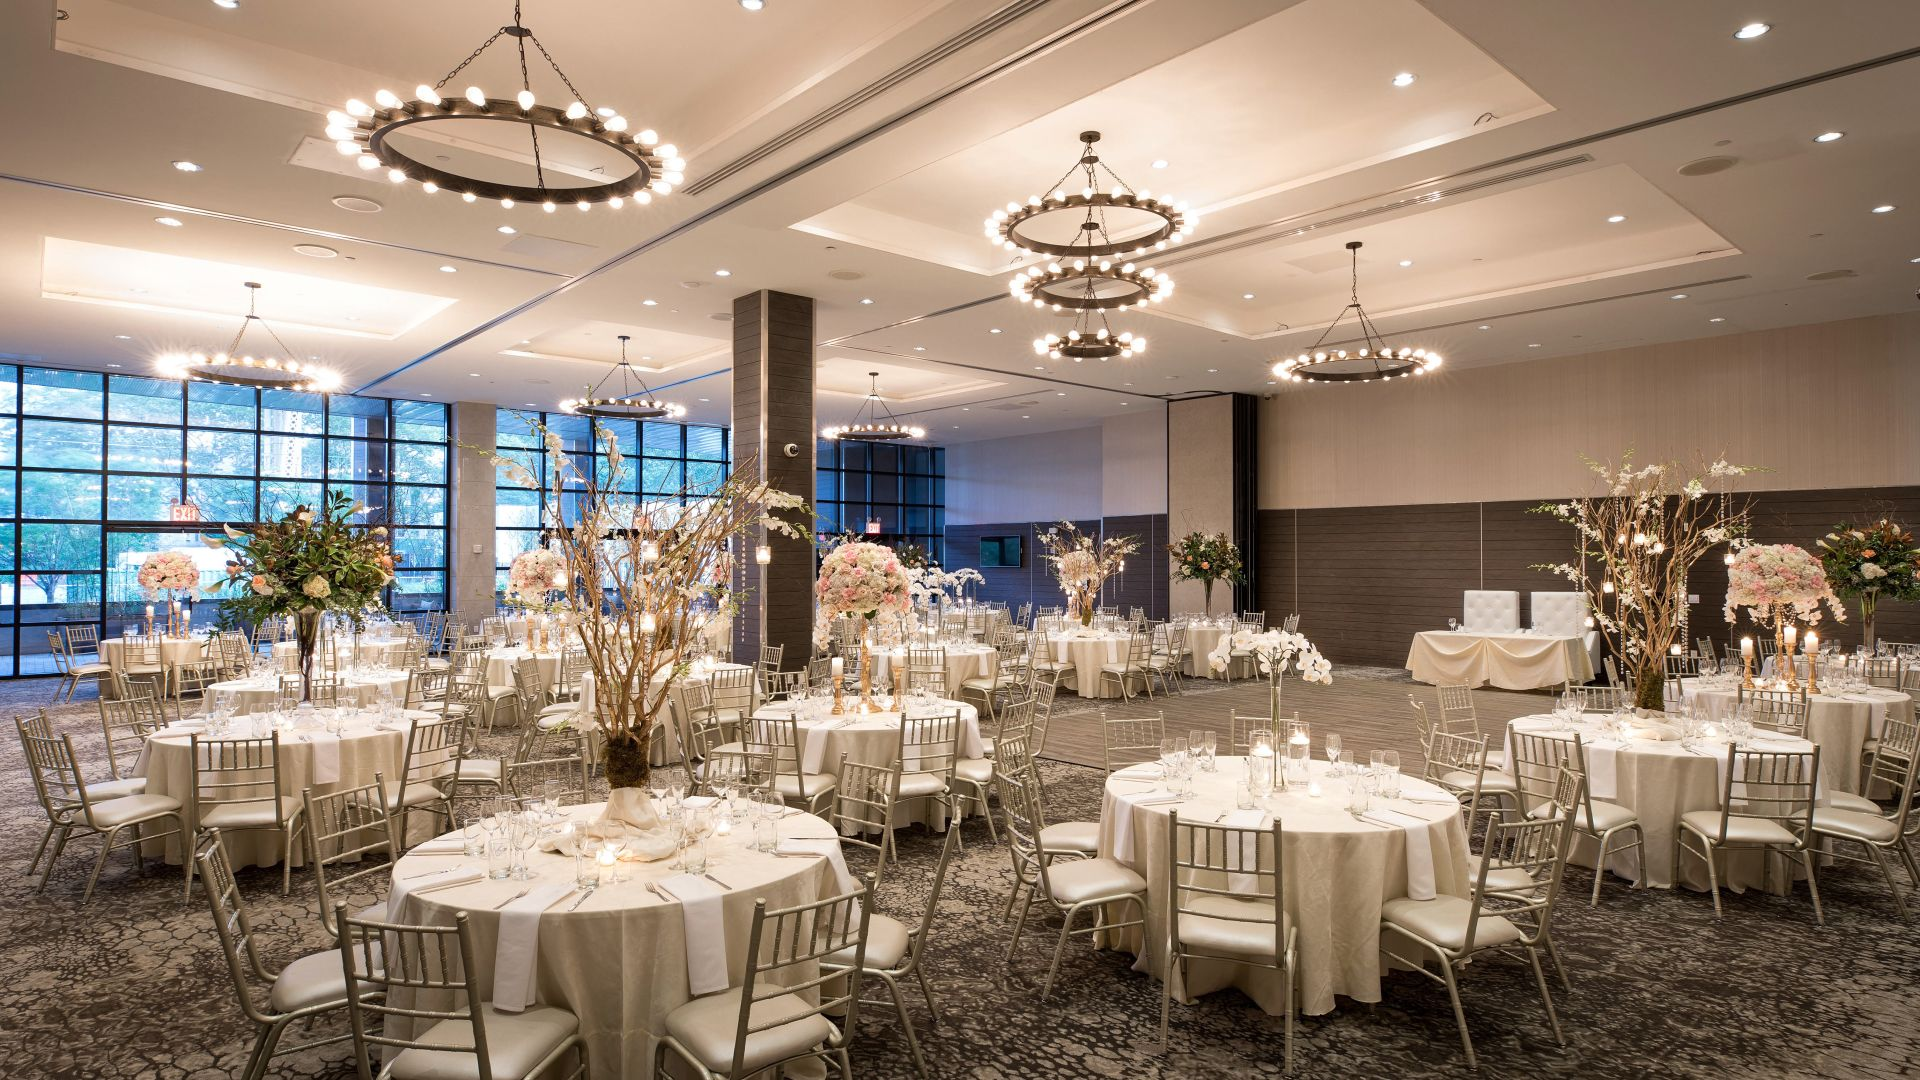 Beautiful Long Island City wedding venue at The Ravel Hotel in Long Island City, NYC.